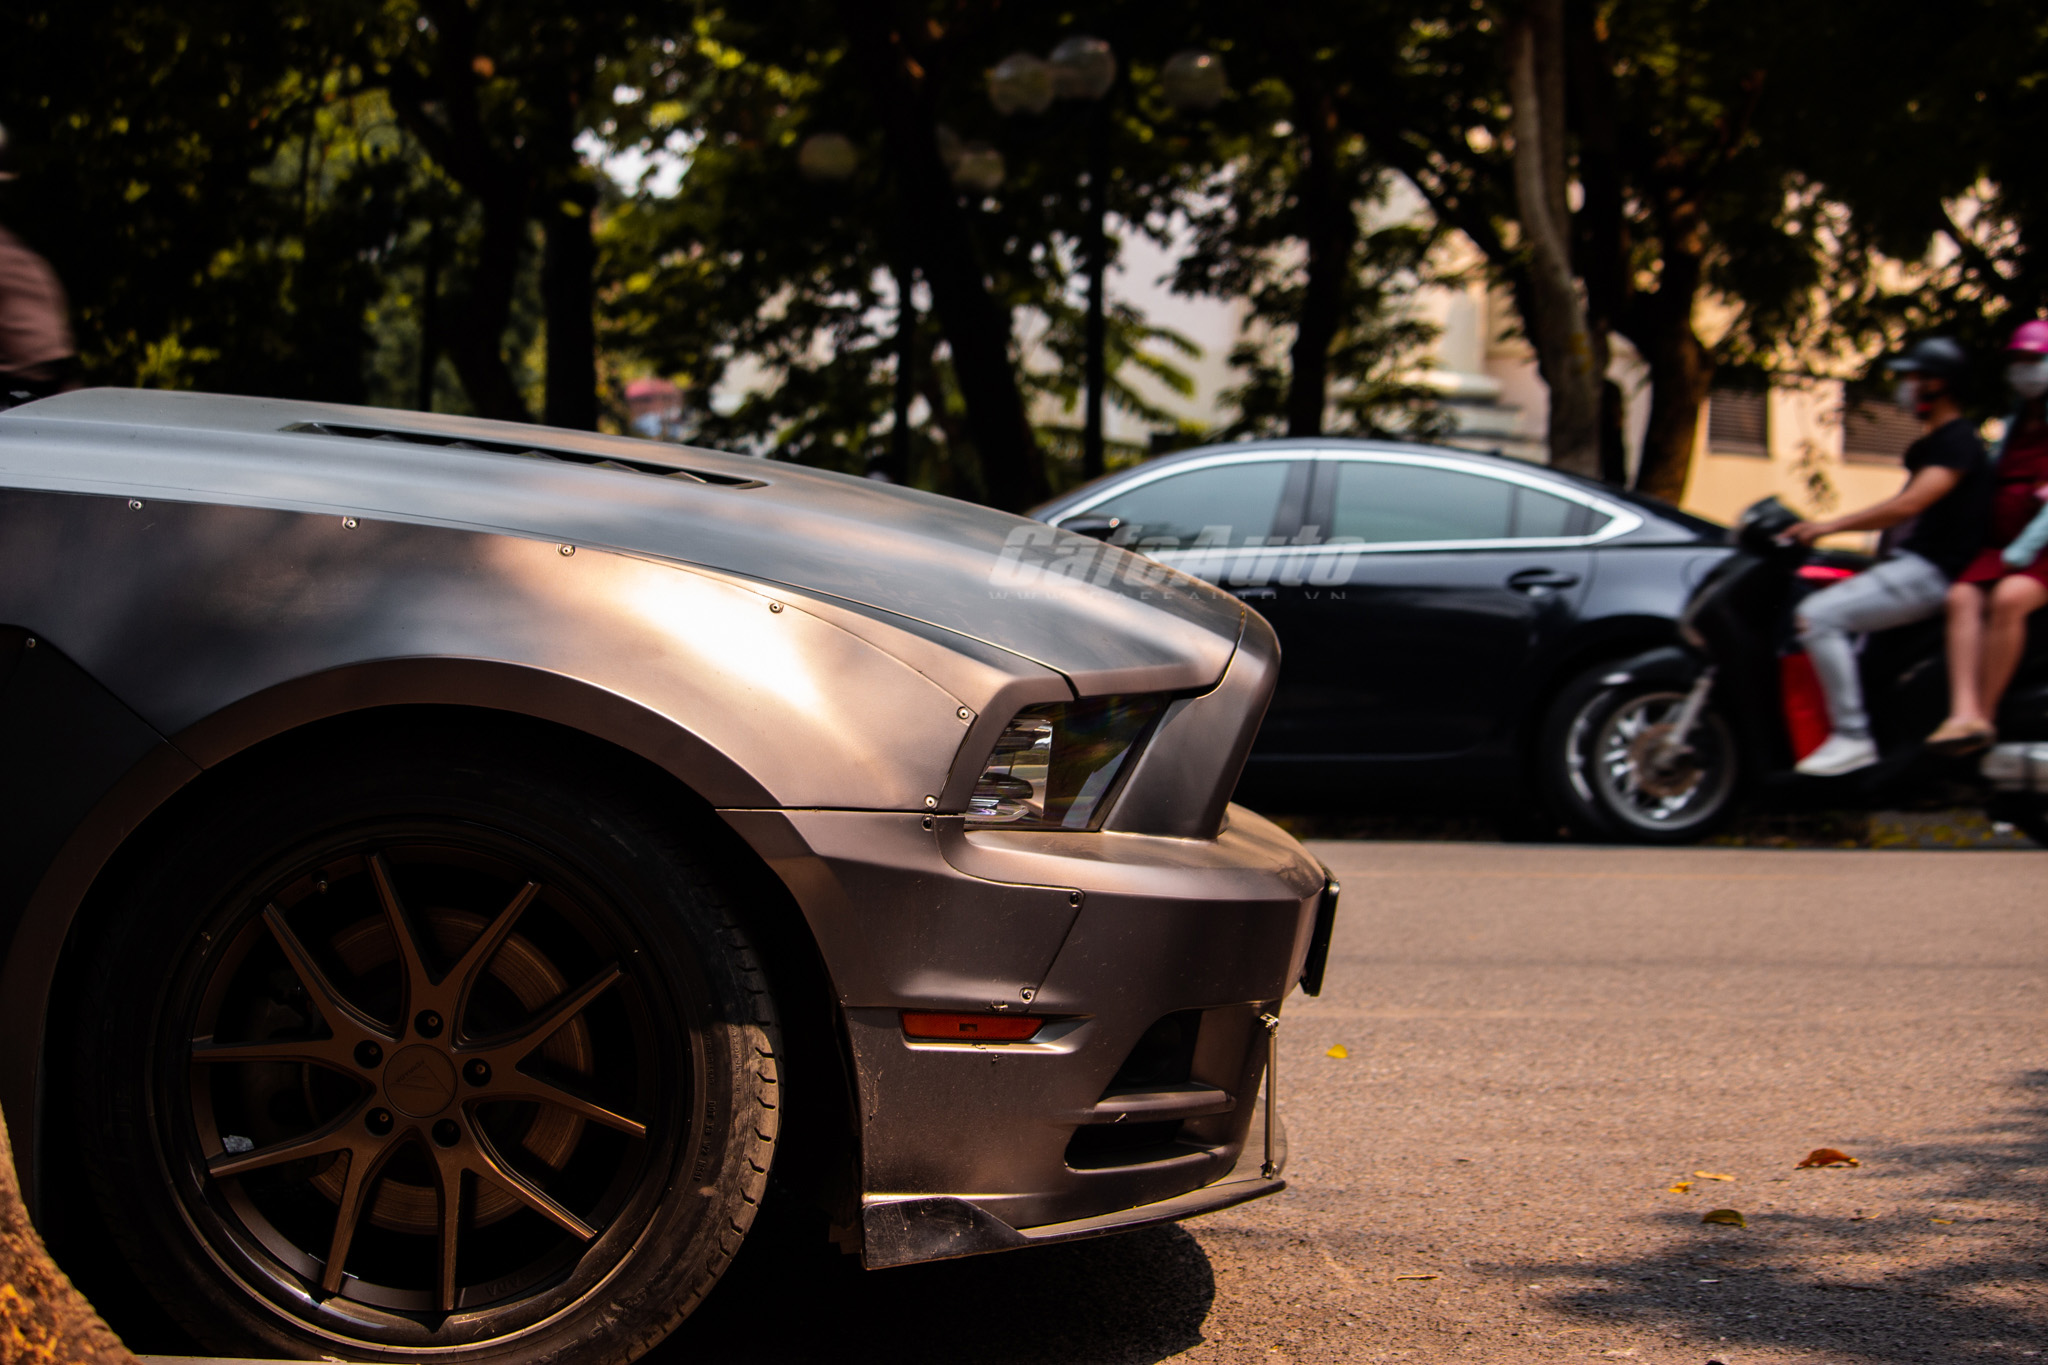 mustangGT-cafeautovn-6